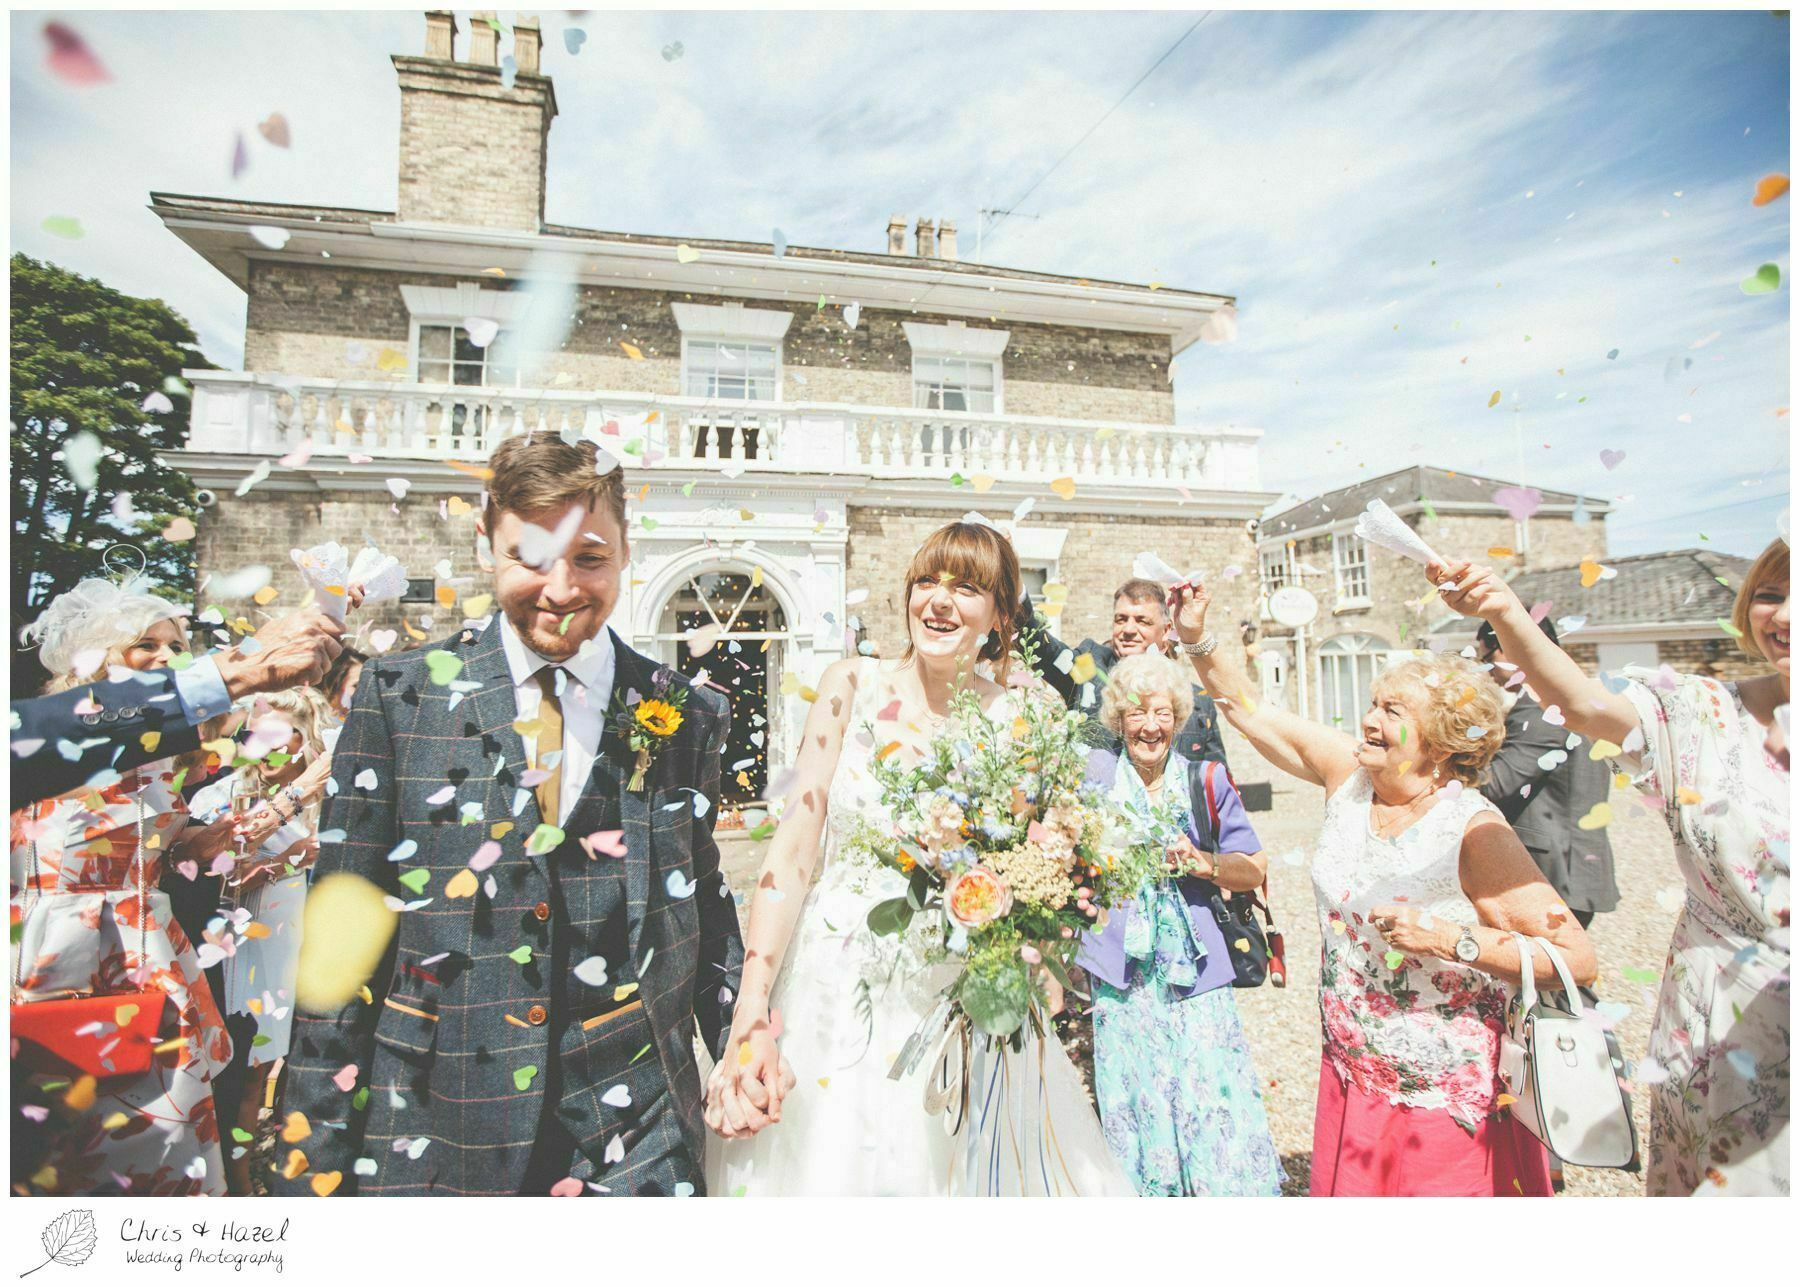 bride and groom covered in confetti shot wedding reception dunedinn country house wedding photography hull by chris and hazel wedding photography Richard walker gemma wrightson